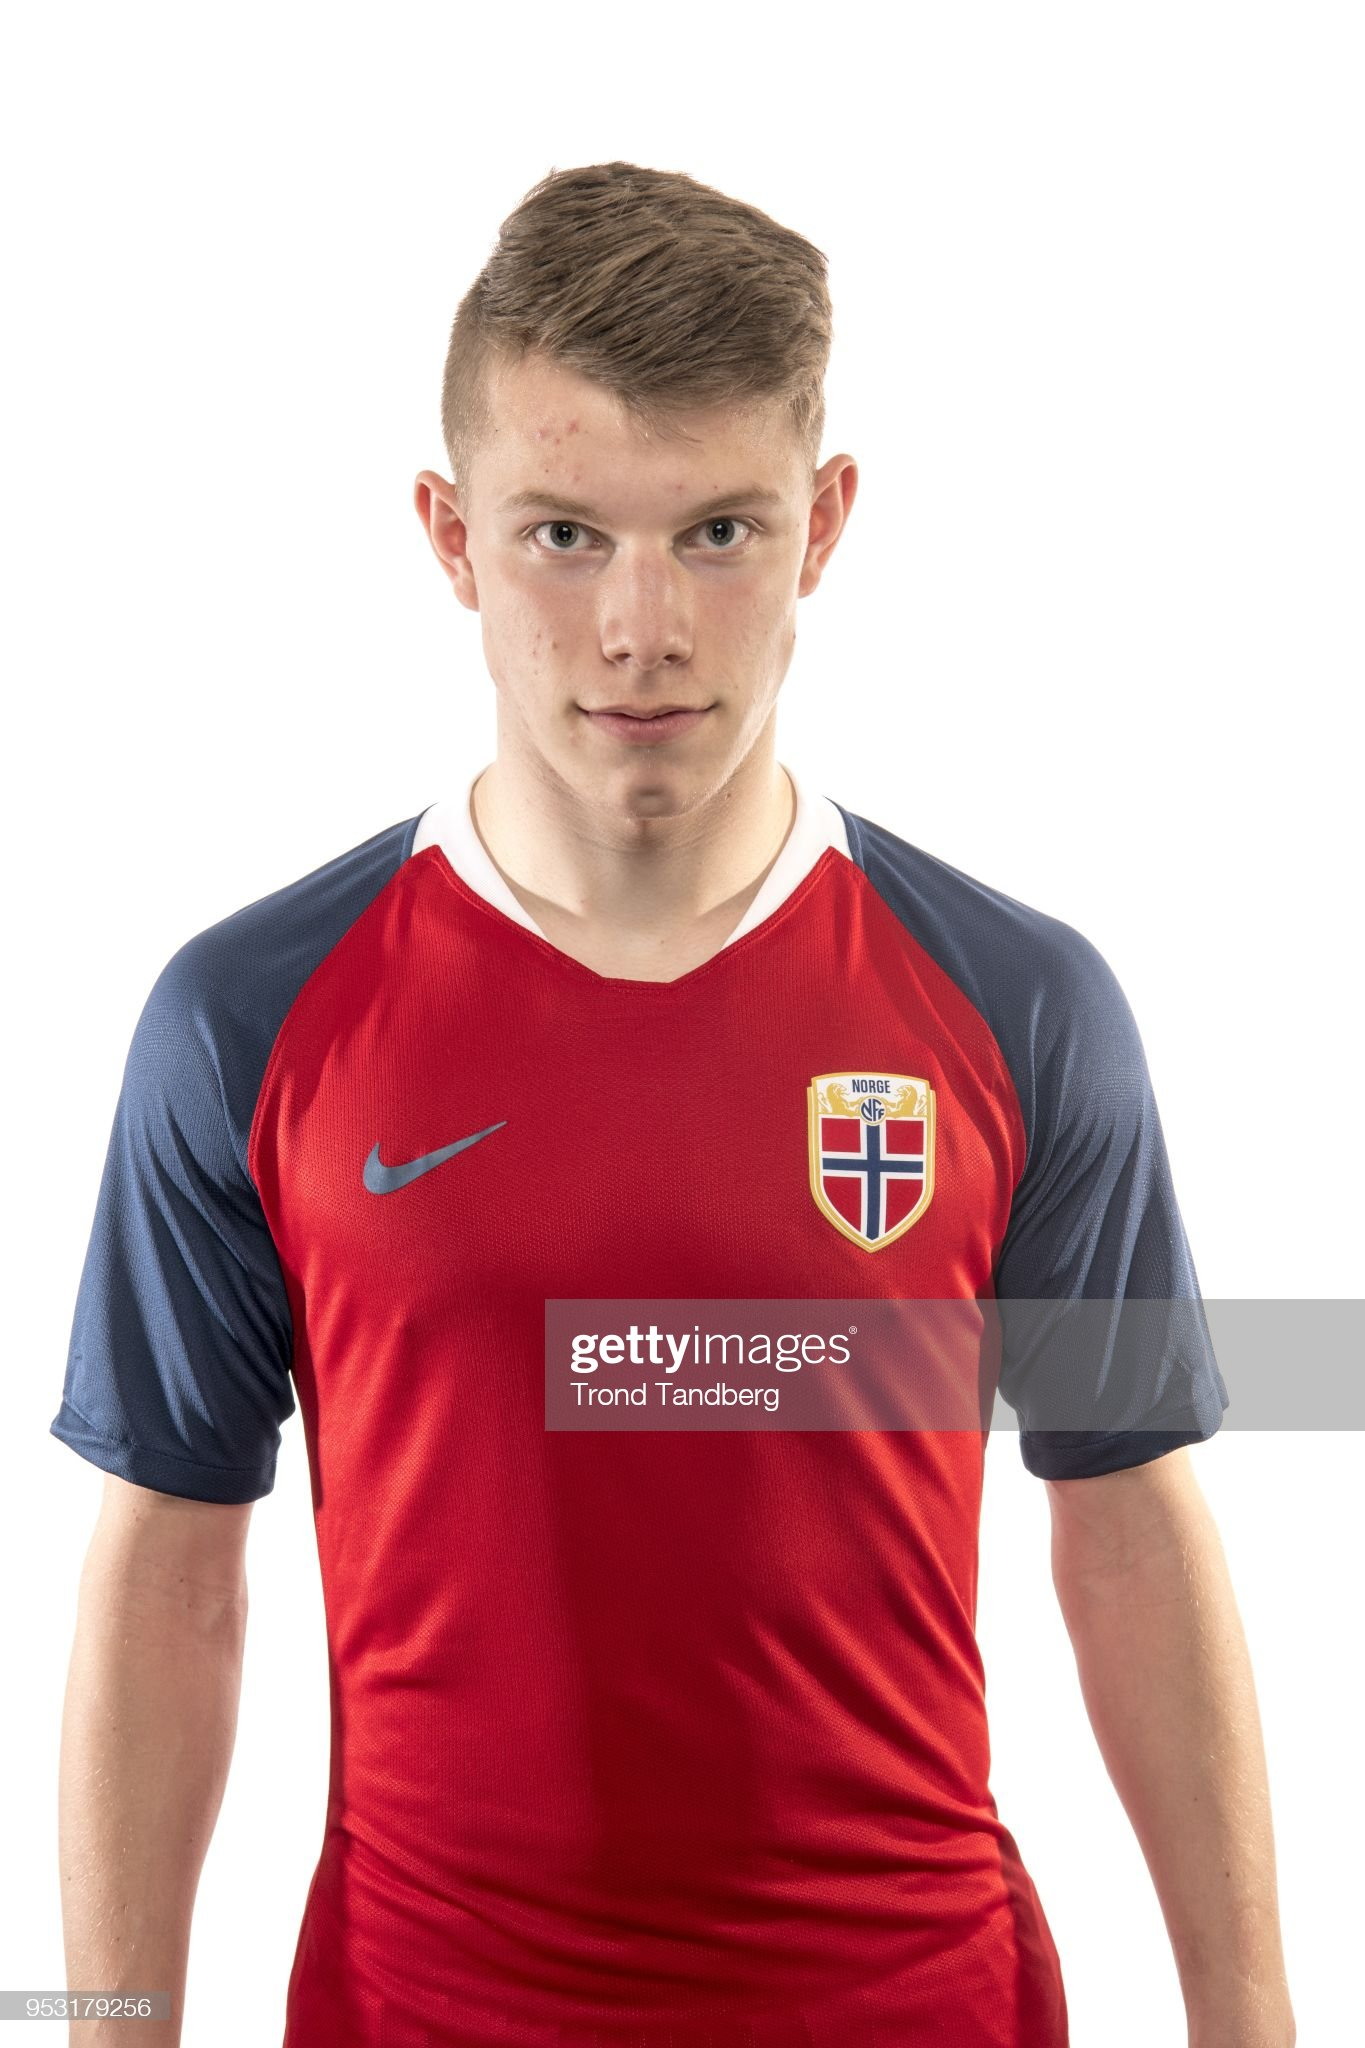 https://media.gettyimages.com/photos/runar-hauge-of-norway-poses-during-u17-photocall-at-ullevaal-stadion-picture-id953179256?s=2048x2048